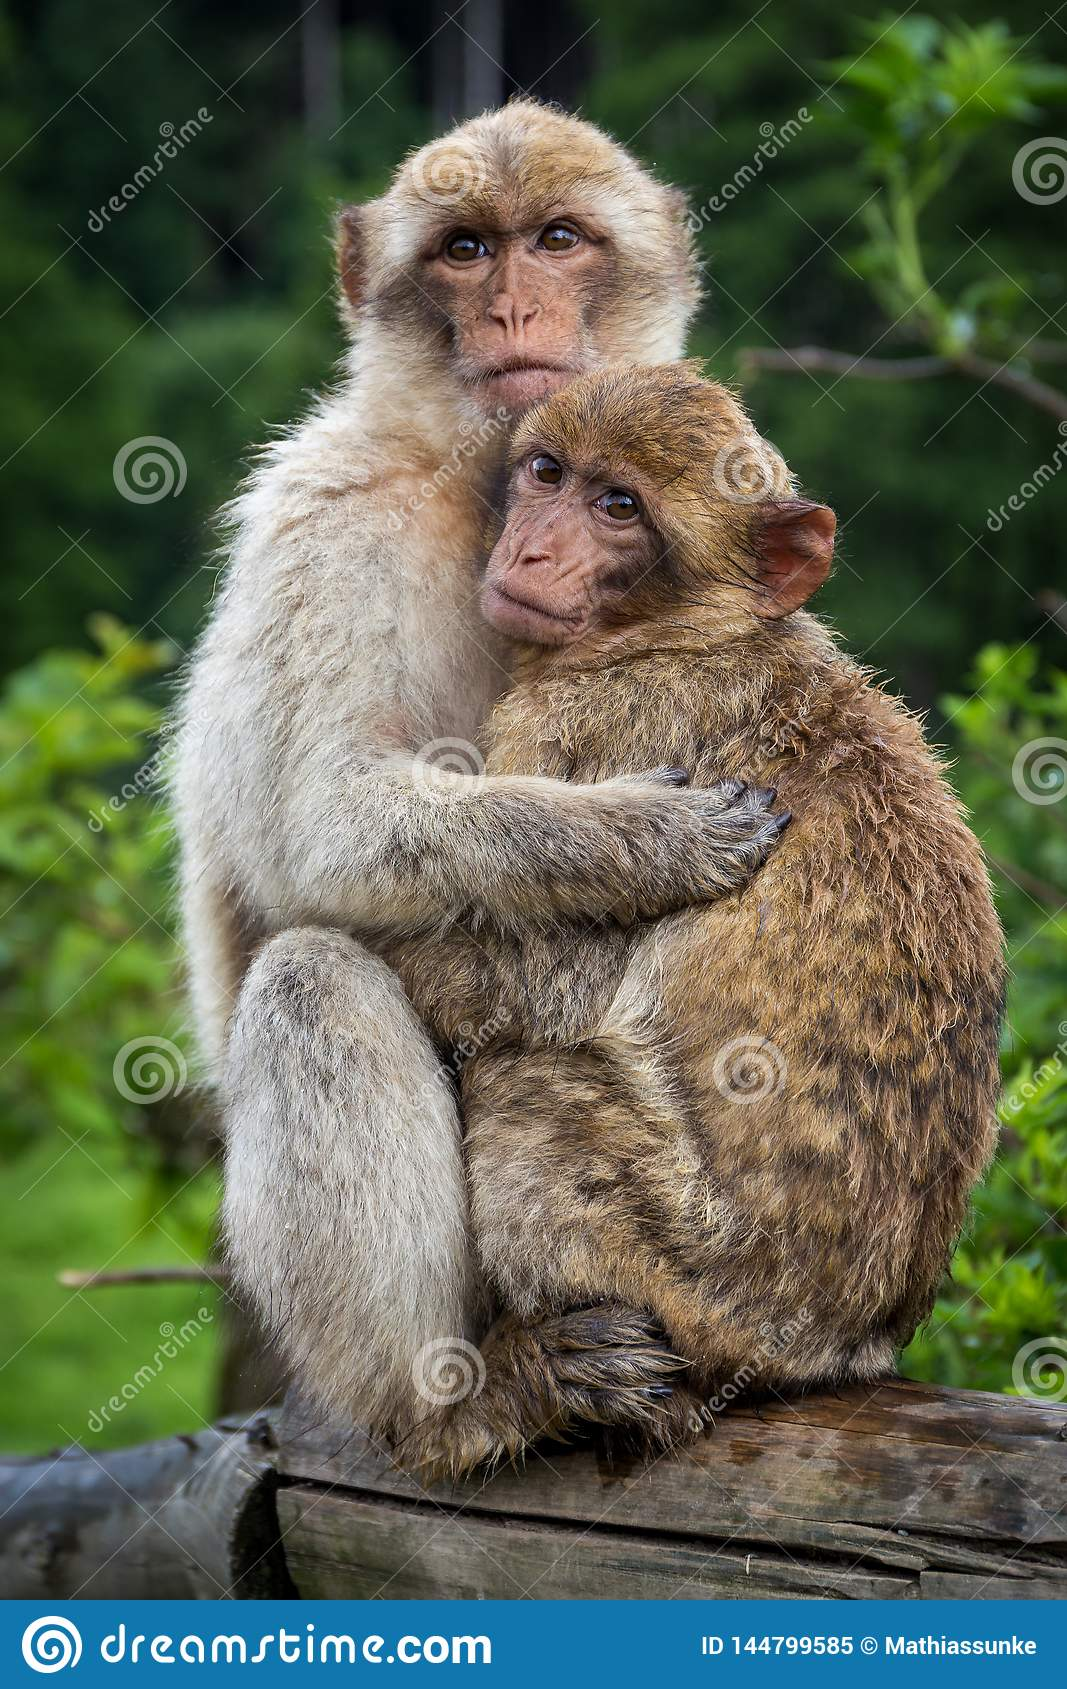 Two monkeys hugging each other